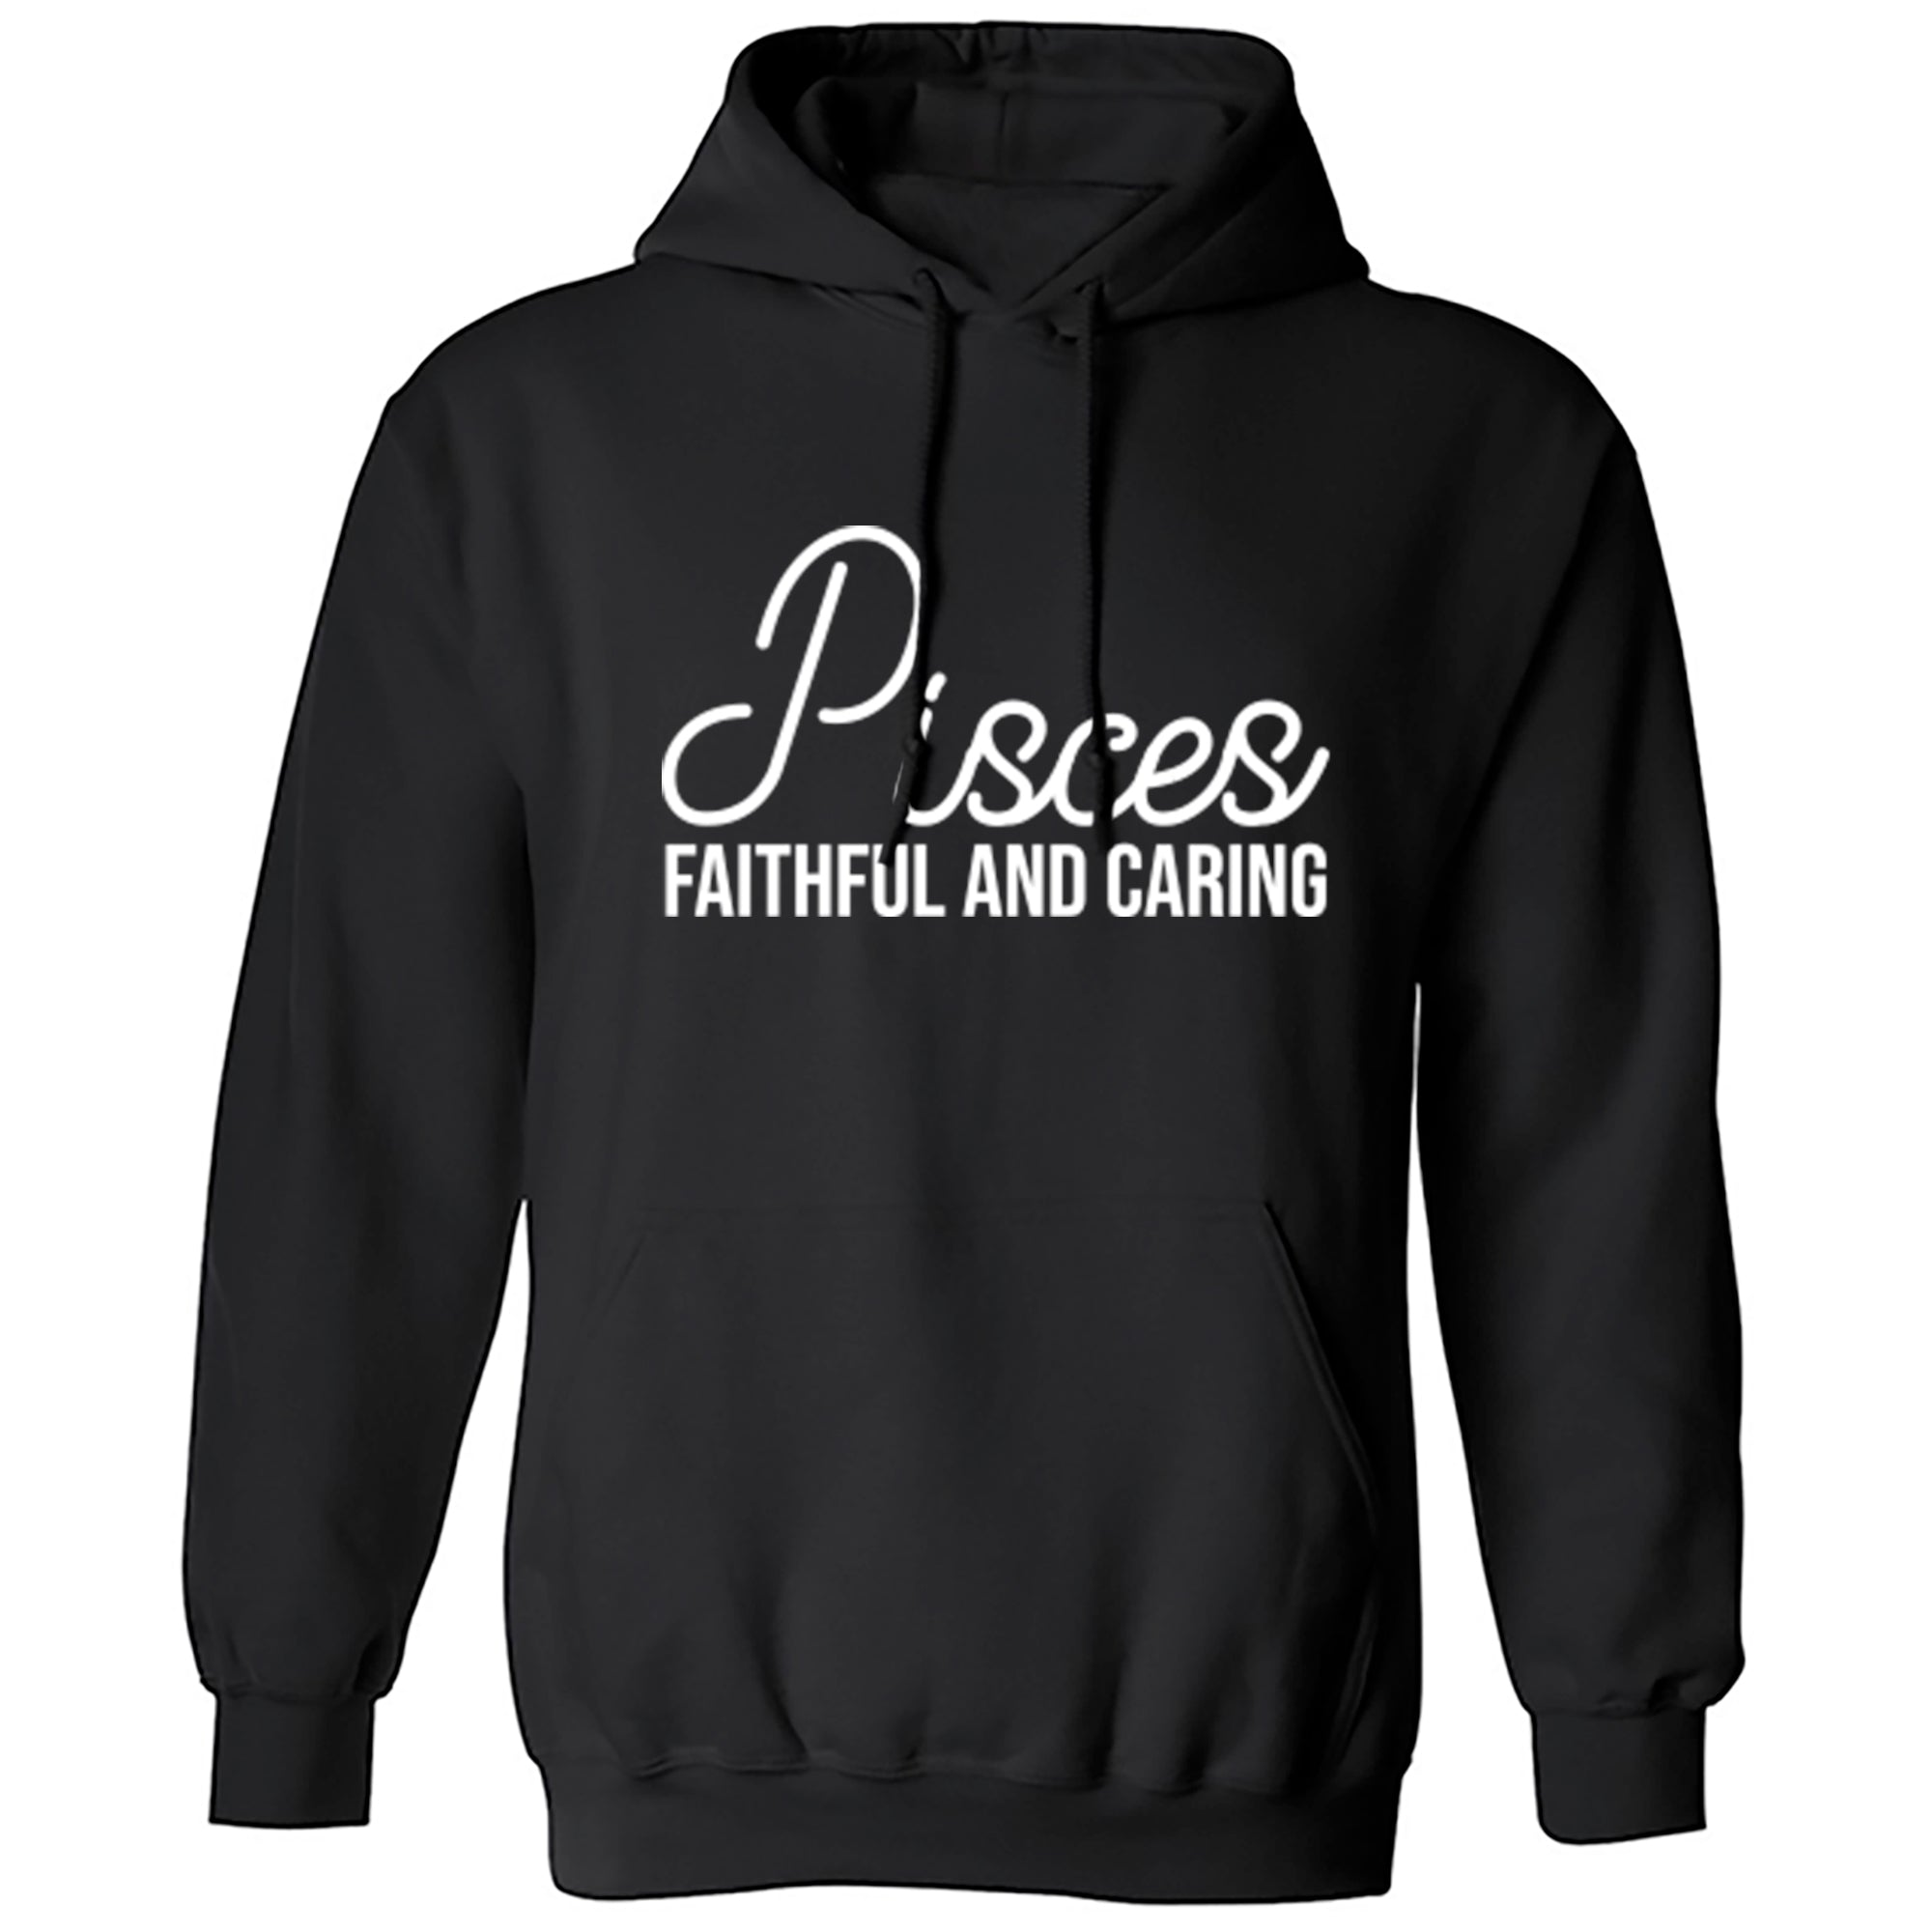 Pisces, Faithful And Caring Unisex Hoodie S0446 - Illustrated Identity Ltd.